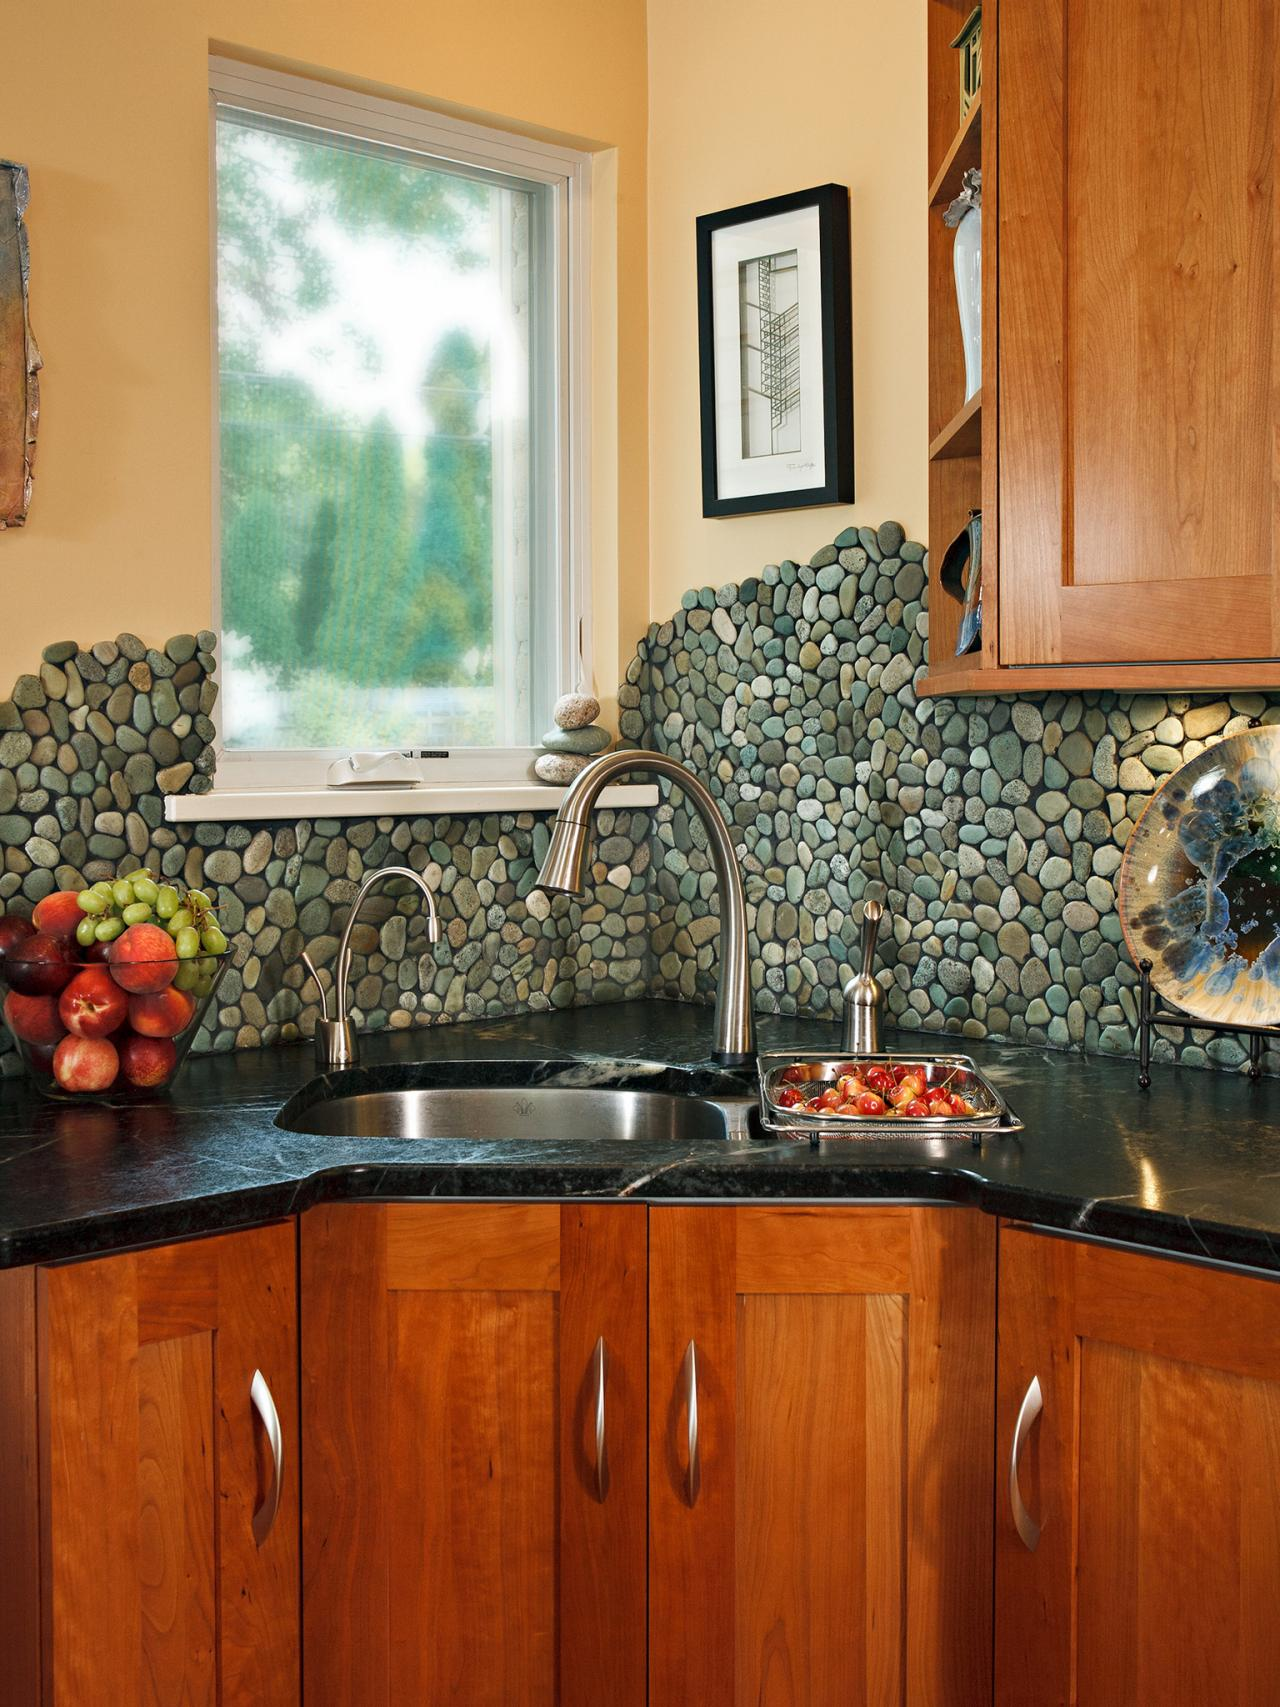 backsplash tiles for kitchens river rock backsplash give a new and natural accent to your kitchen homesfeed 7742